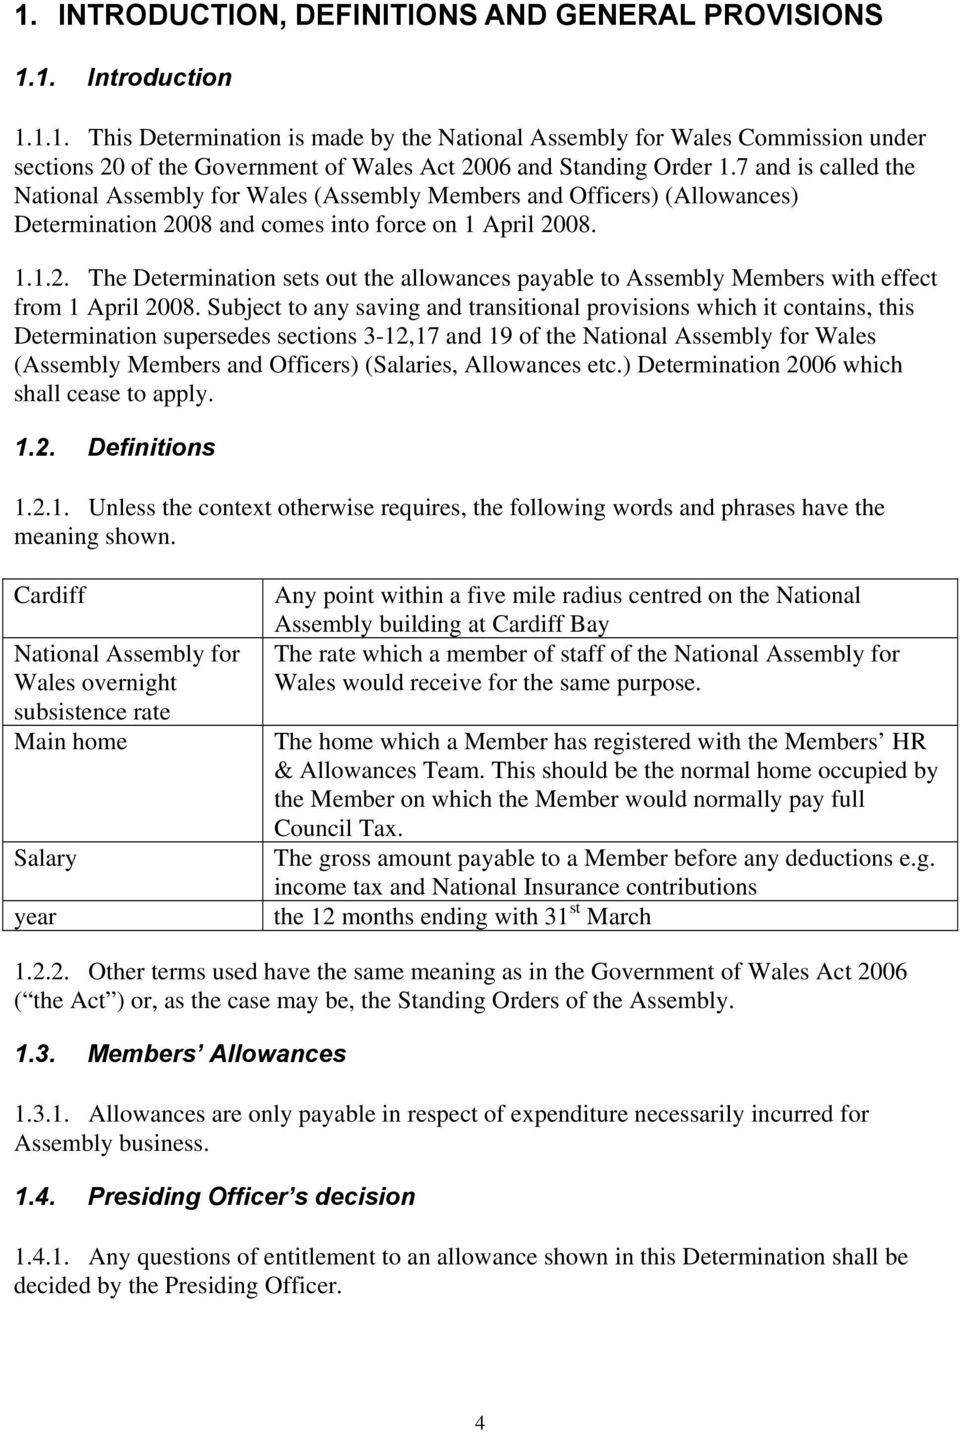 08 and comes into force on 1 April 2008. 1.1.2. The Determination sets out the allowances payable to Assembly Members with effect from 1 April 2008.